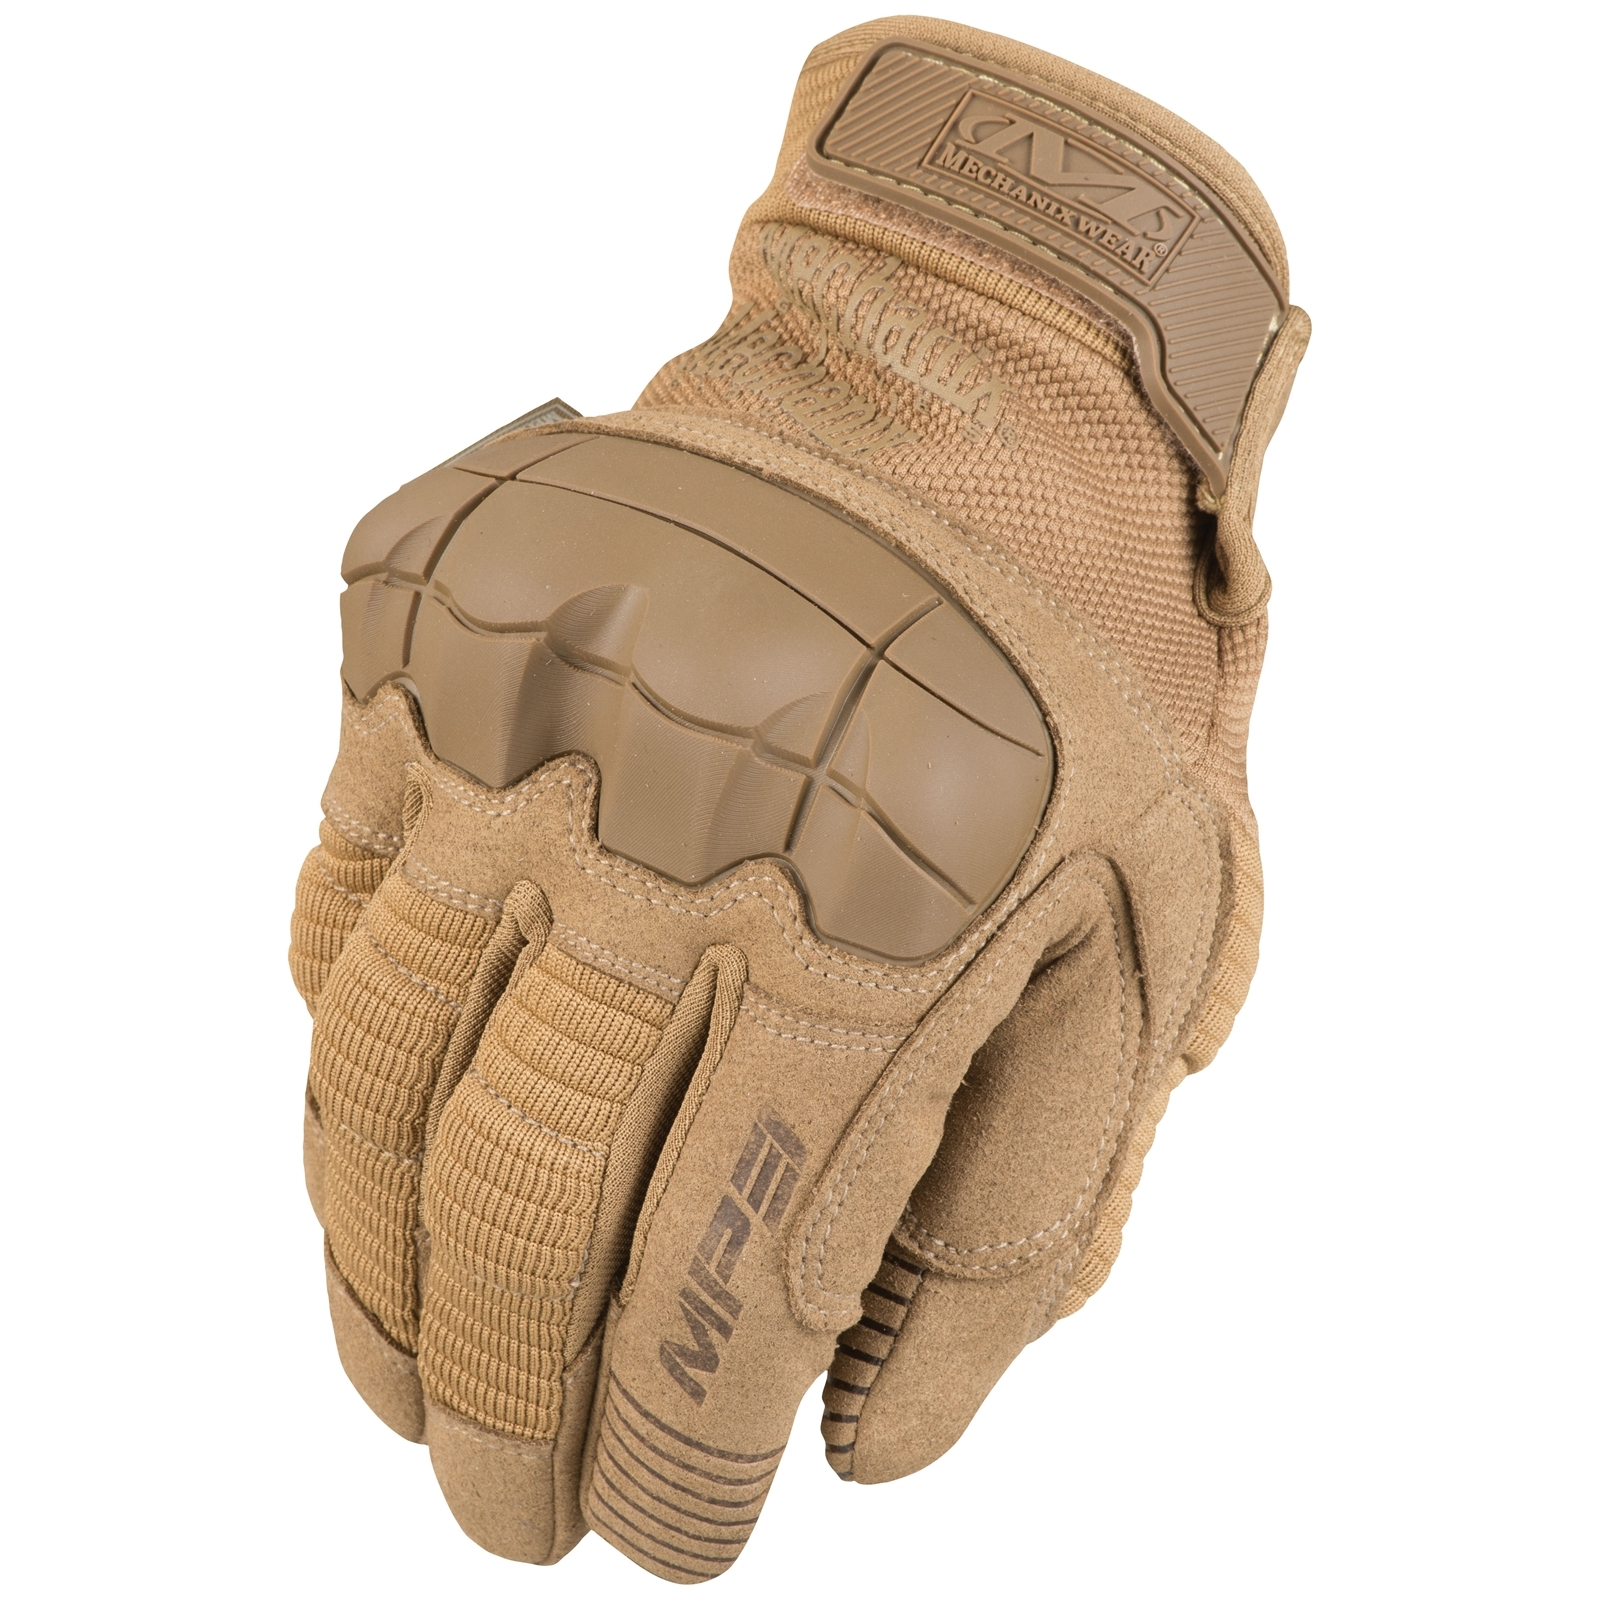 Mechanix Wear M-Pact 3 Coyote Gloves - Large